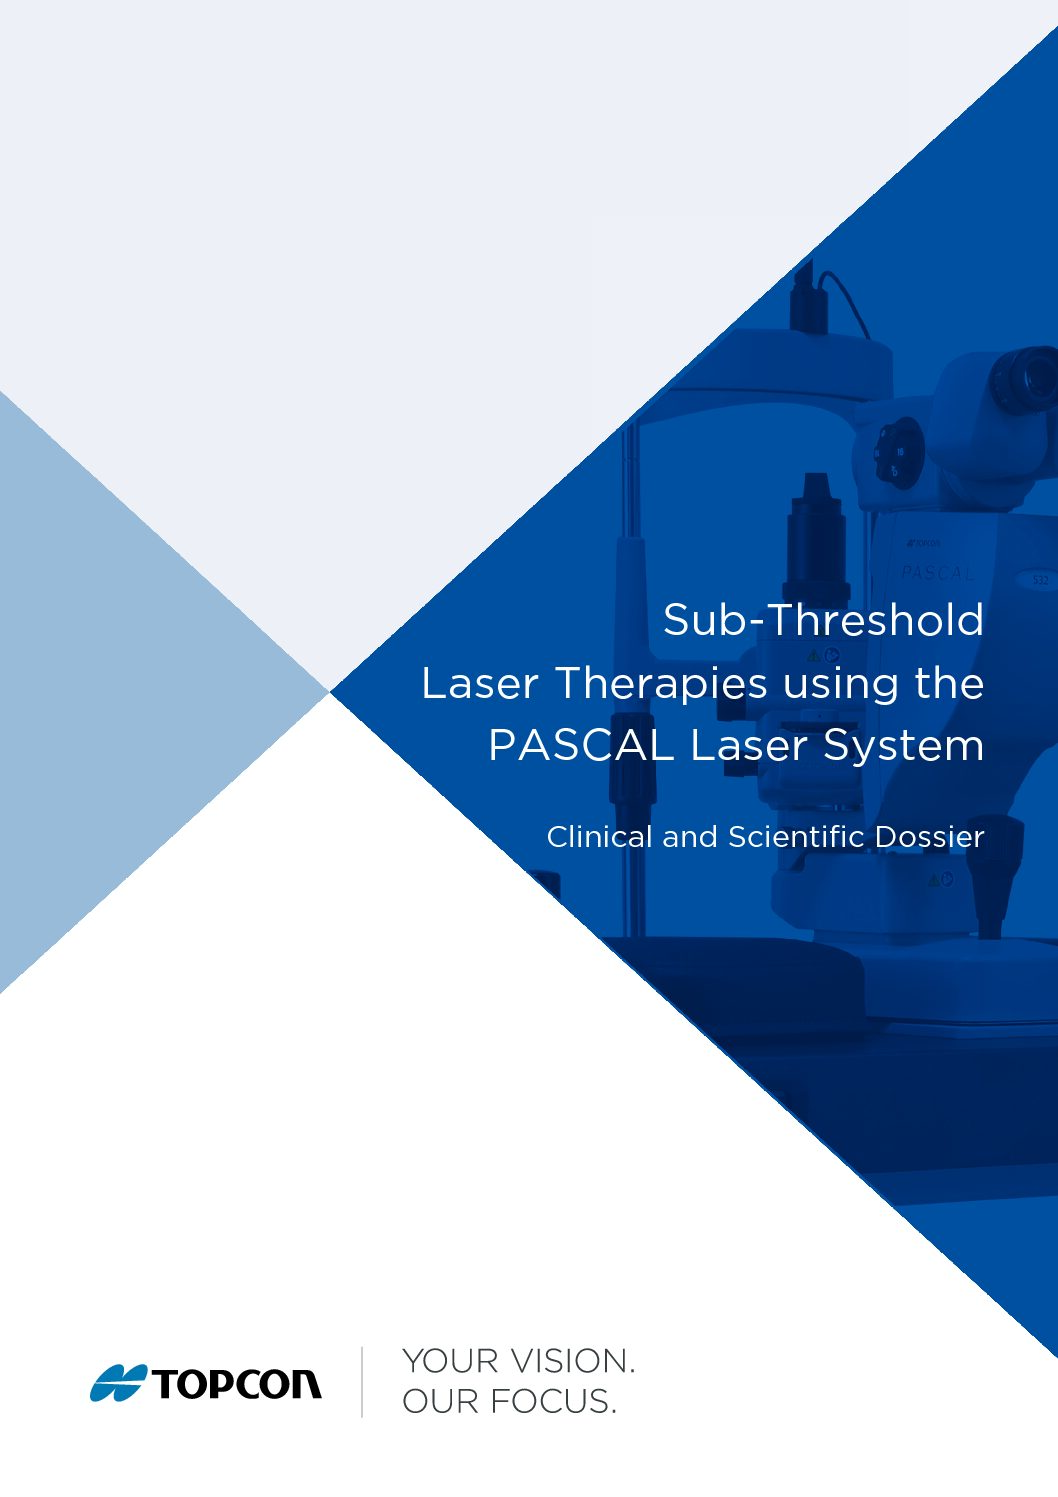 Sub-Threshold Laser Therapies using the PASCAL Laser System